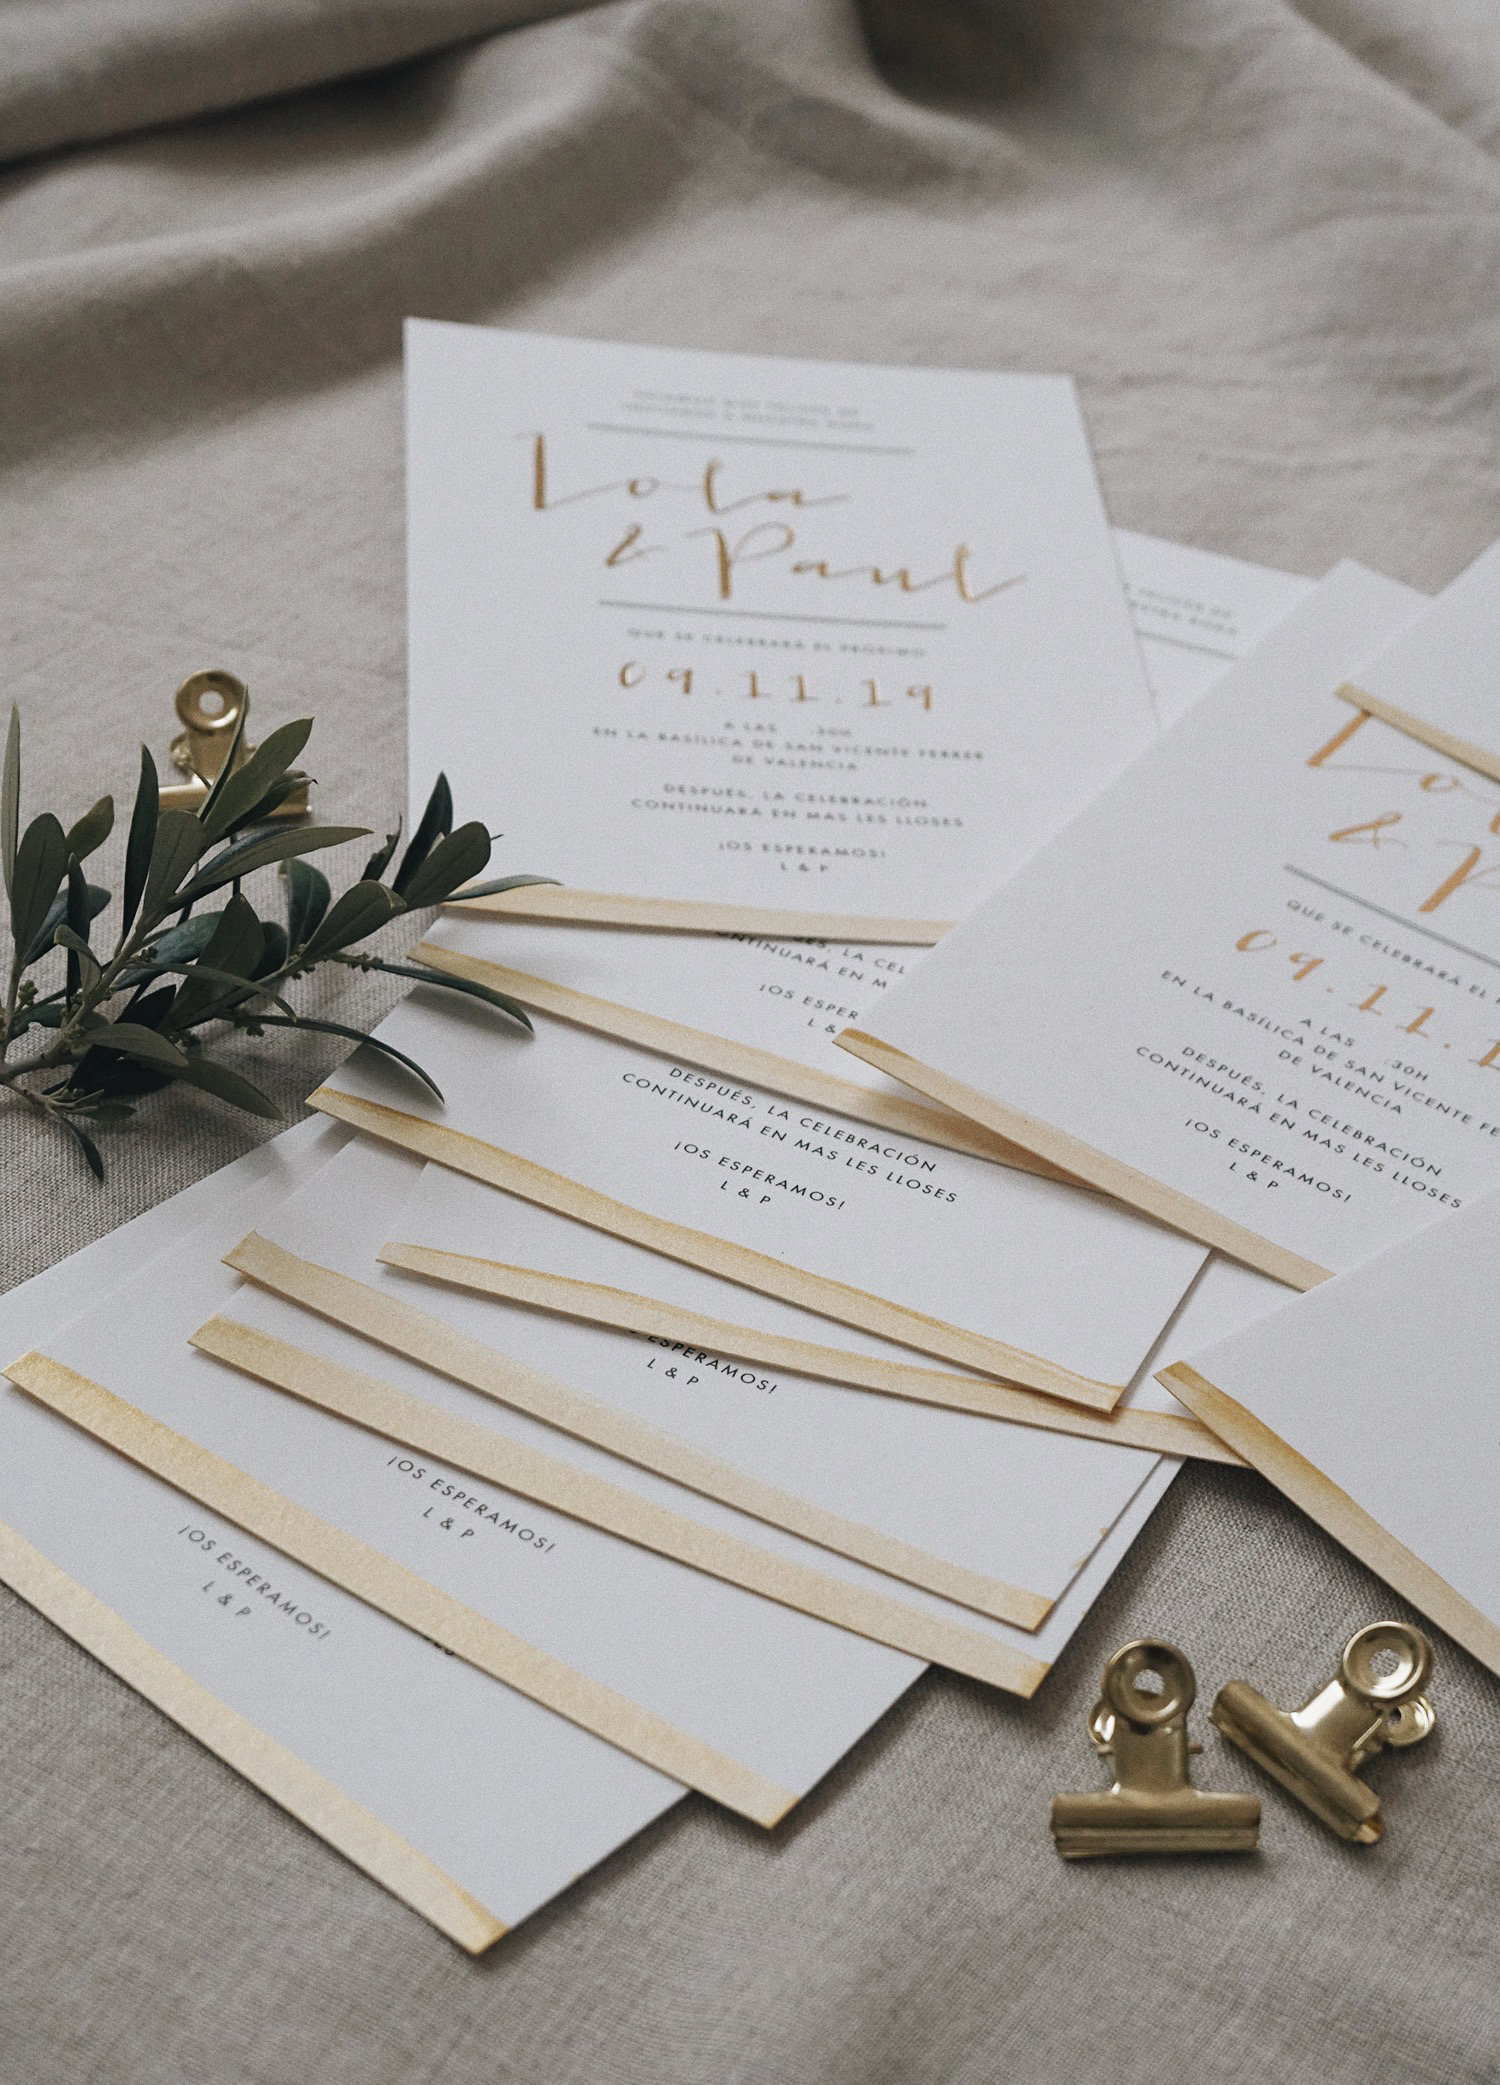 L+P INVITATIONS-22518-macarenagea